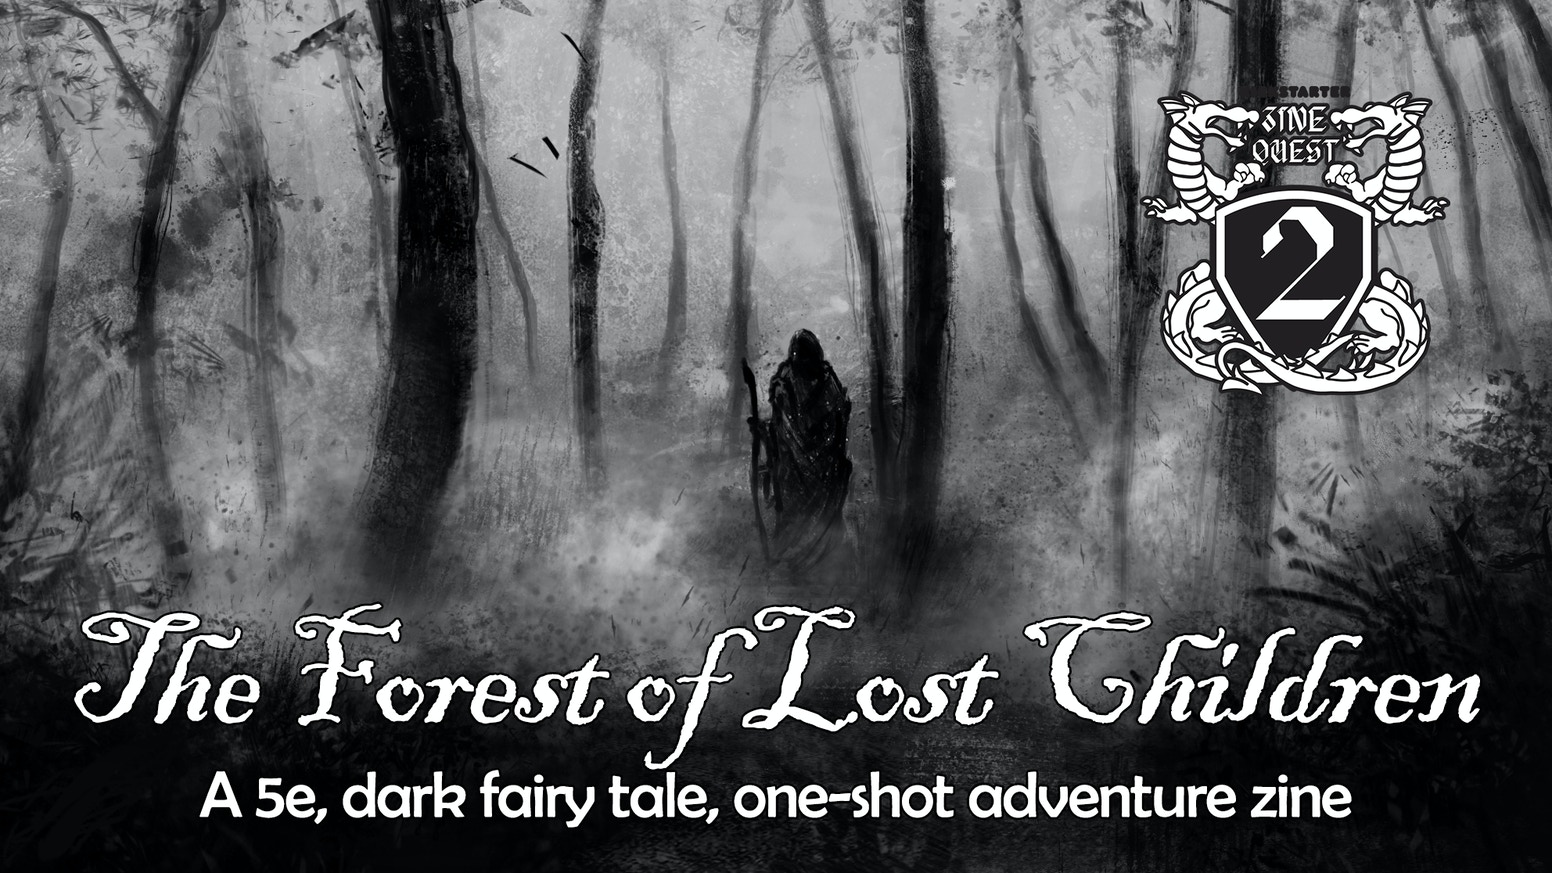 A dark fairy tale adventure for 5e.